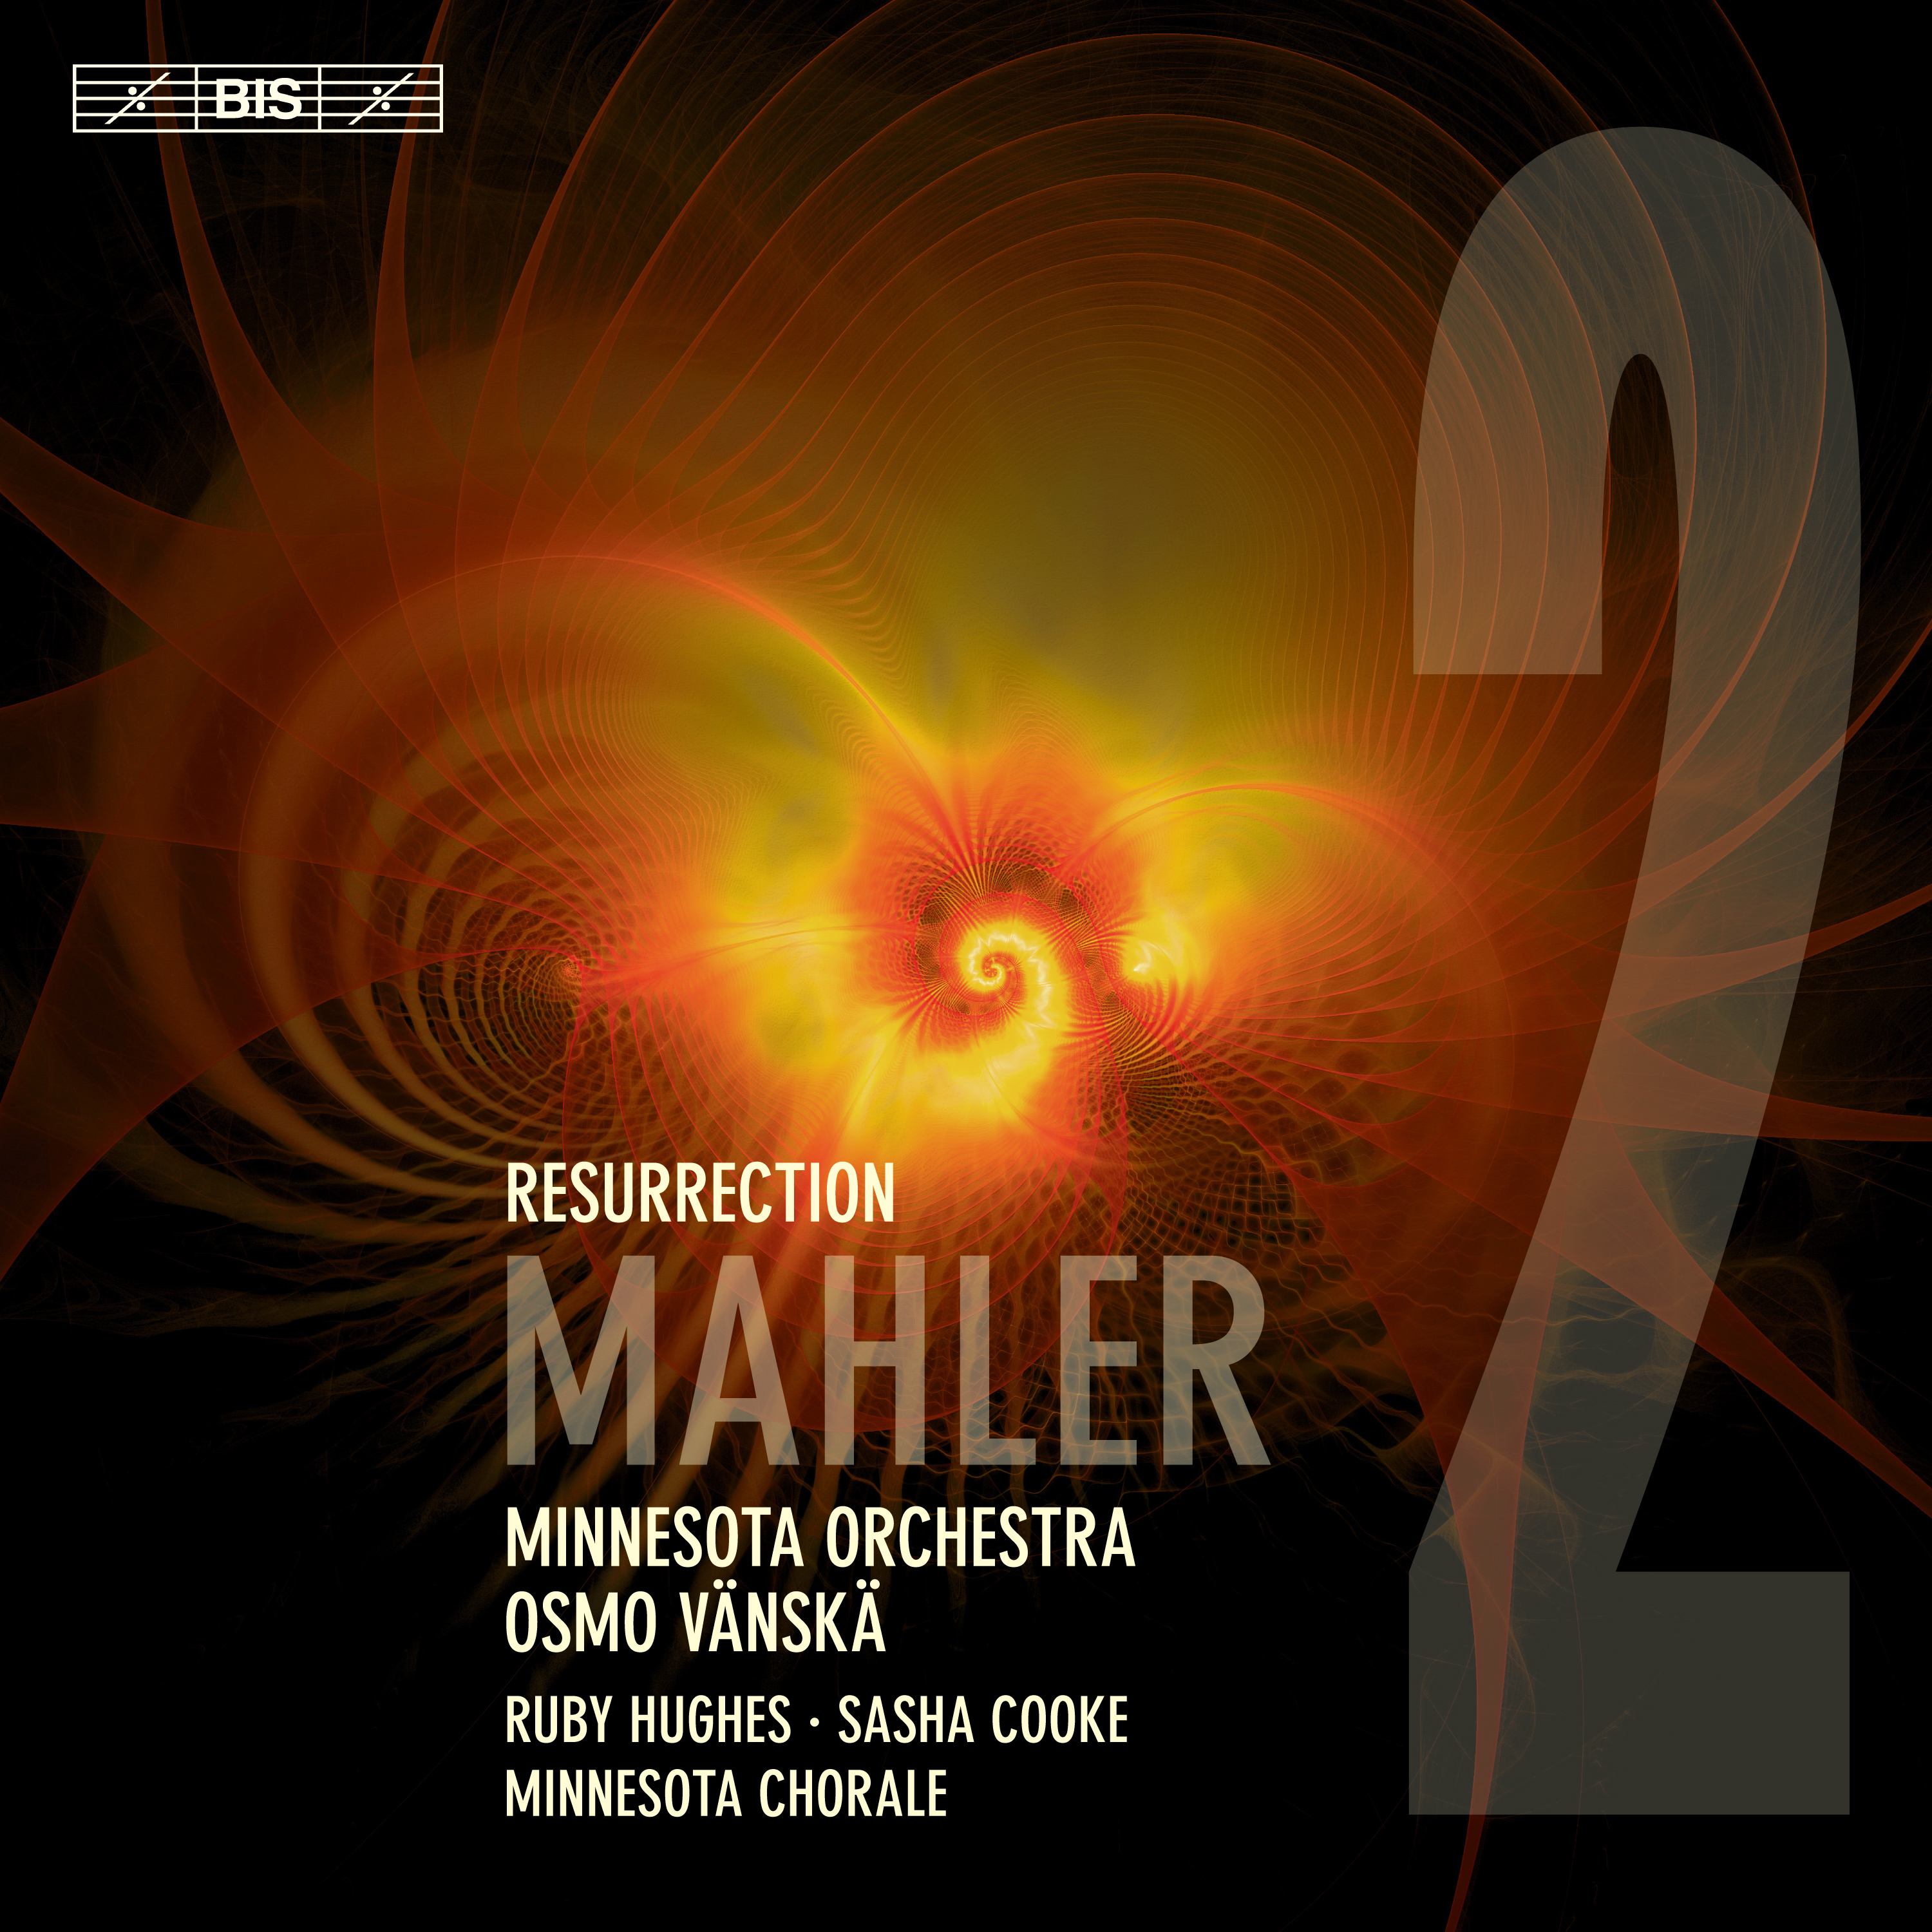 Caption: Mahler 2, Credit: Bis Records